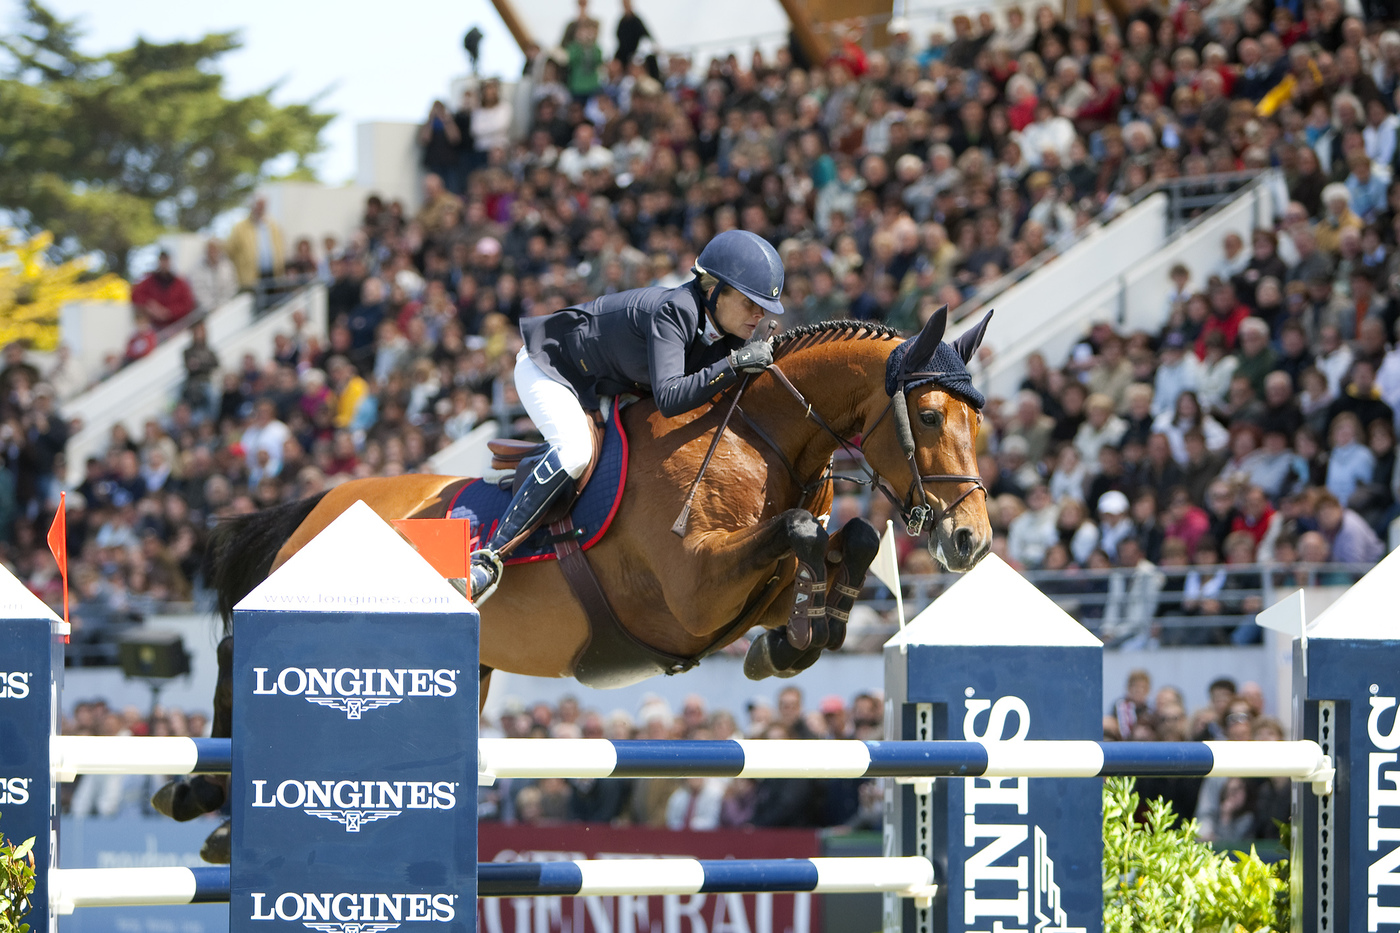 Longines Show Jumping Event: Jumping International de France, La Baule 2009 2